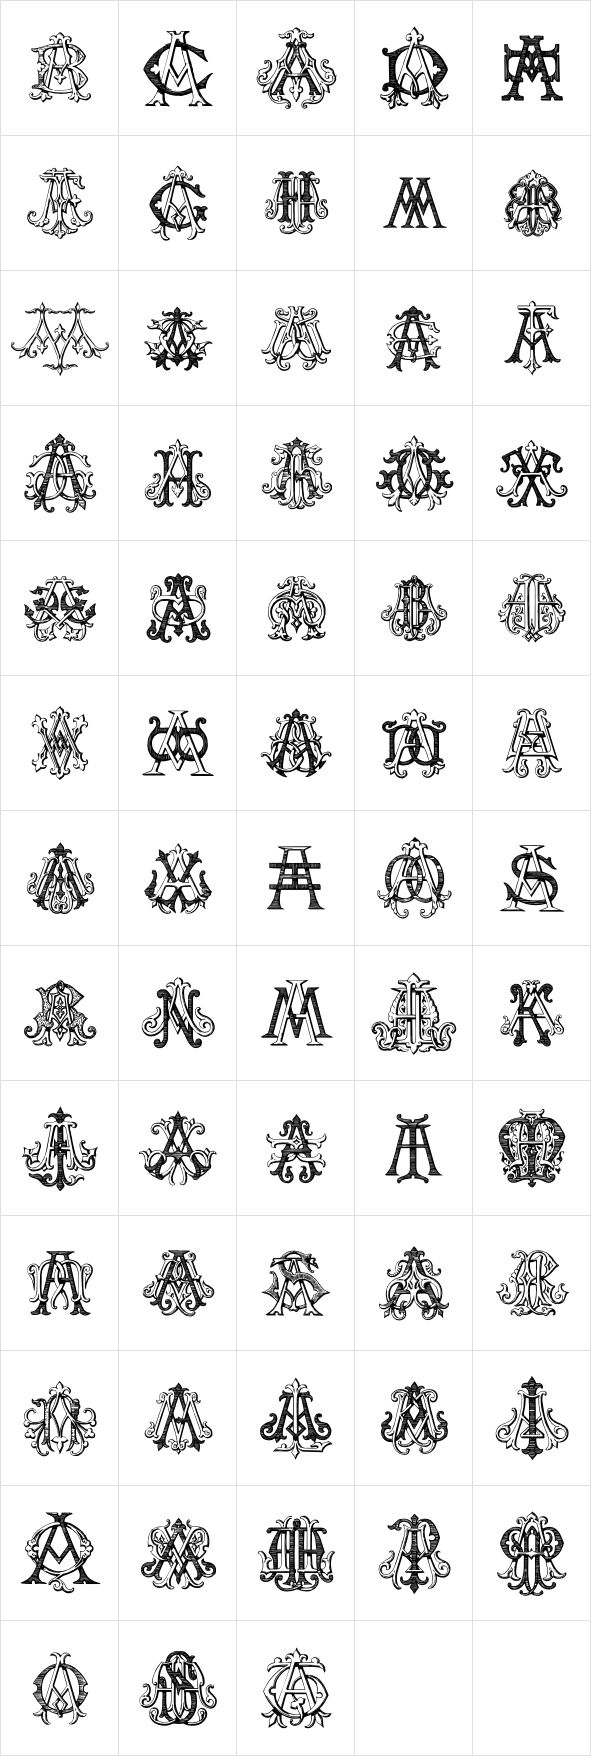 Intellecta Monograms by Intellecta Design - Desktop Font, WebFont and Mobile Font - YouWorkForThem